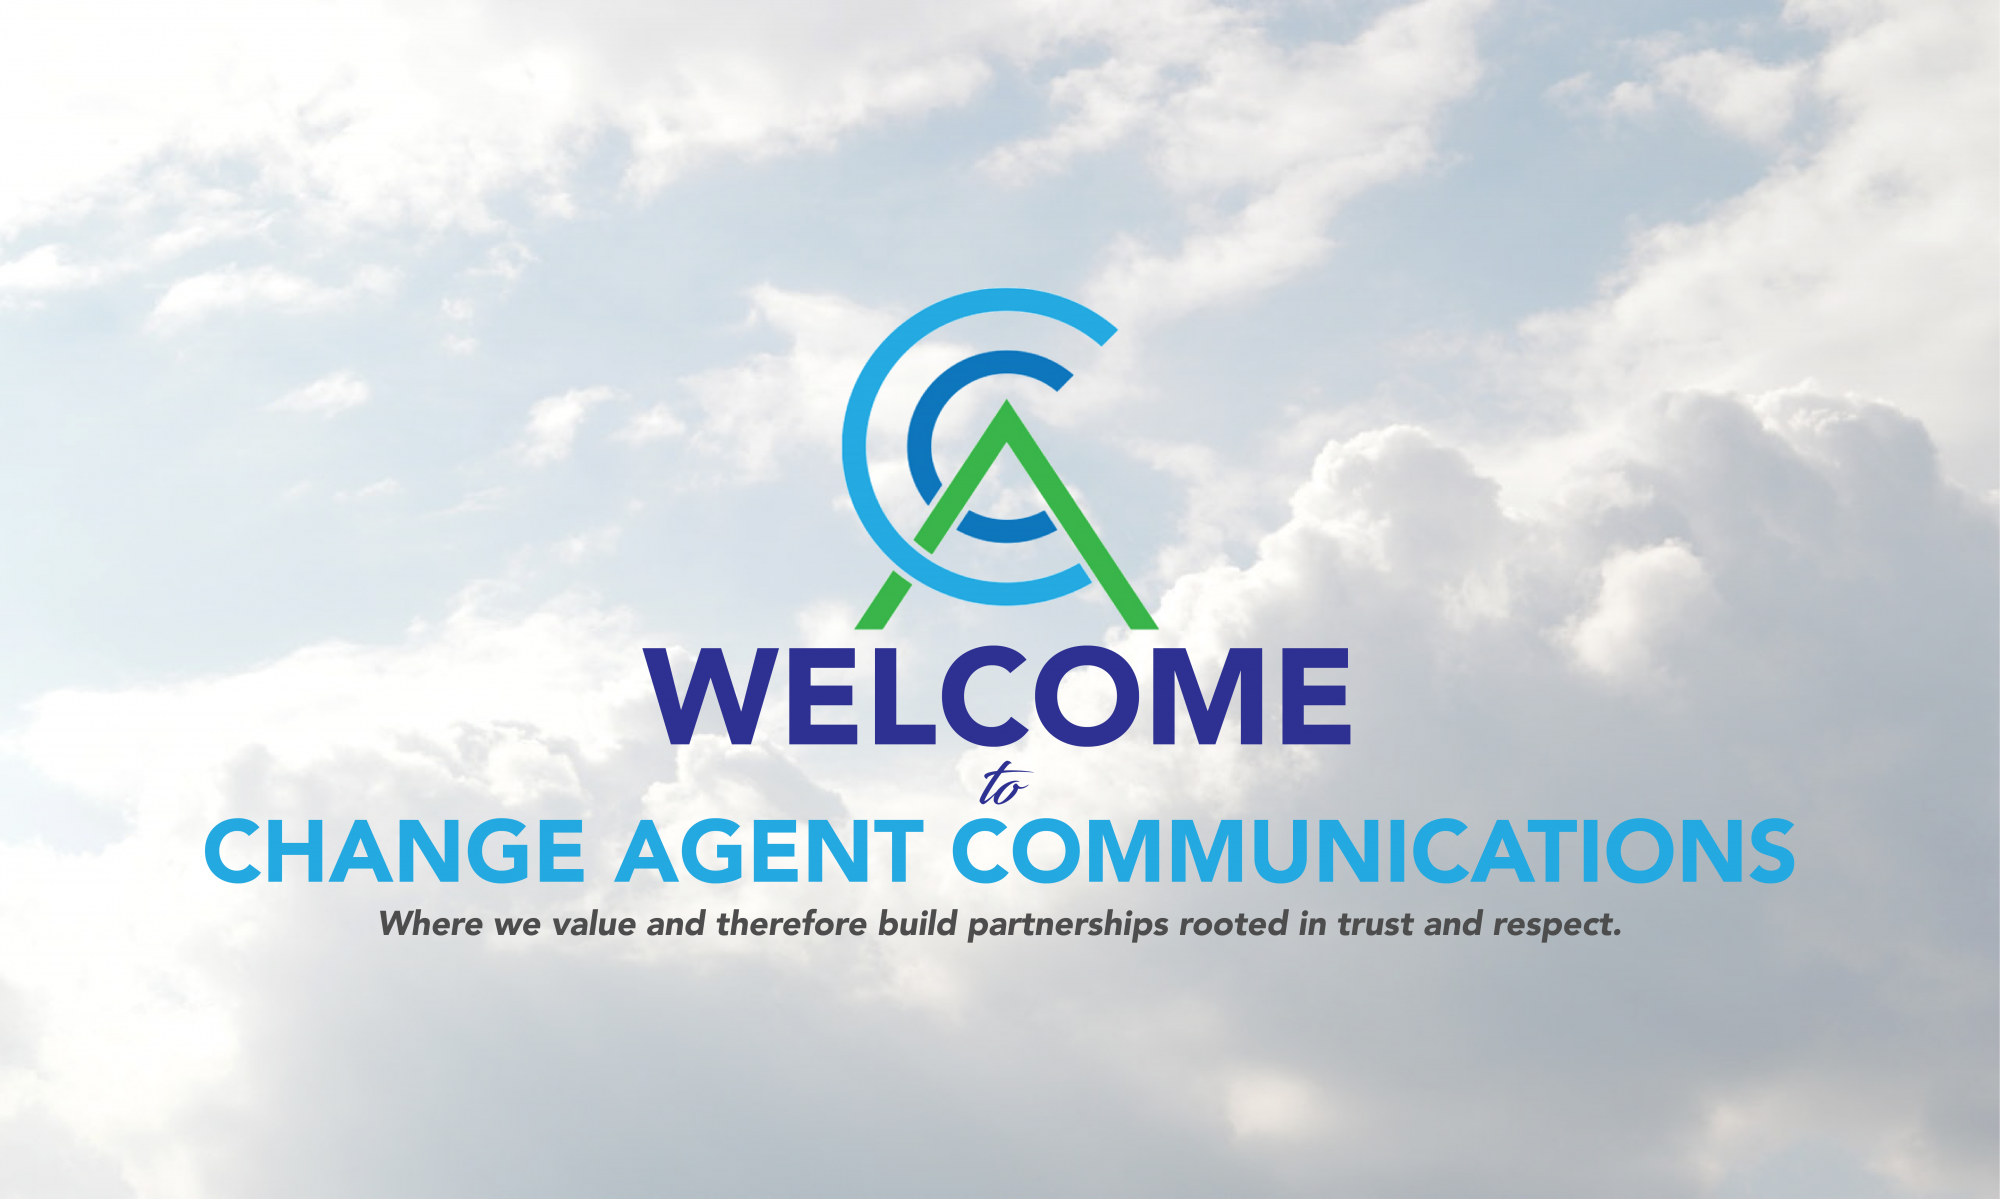 Change Agent Communications